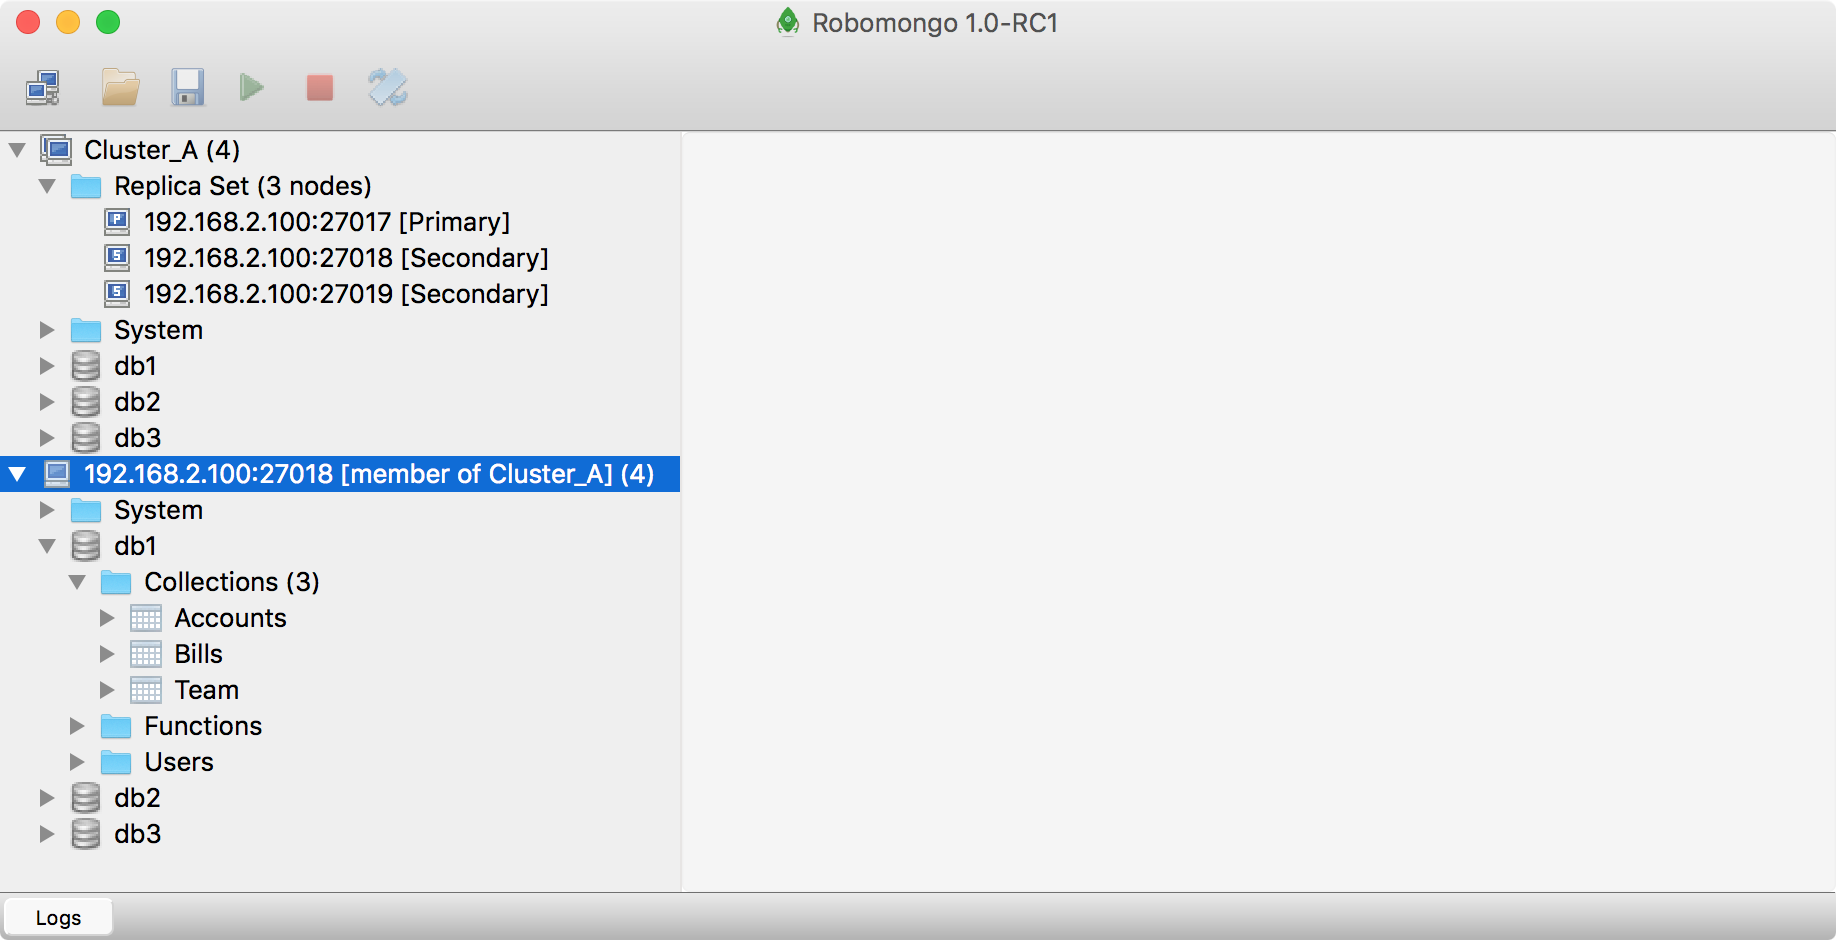 Robomongo 1 0 RC1 brings support to Replica Set Clusters